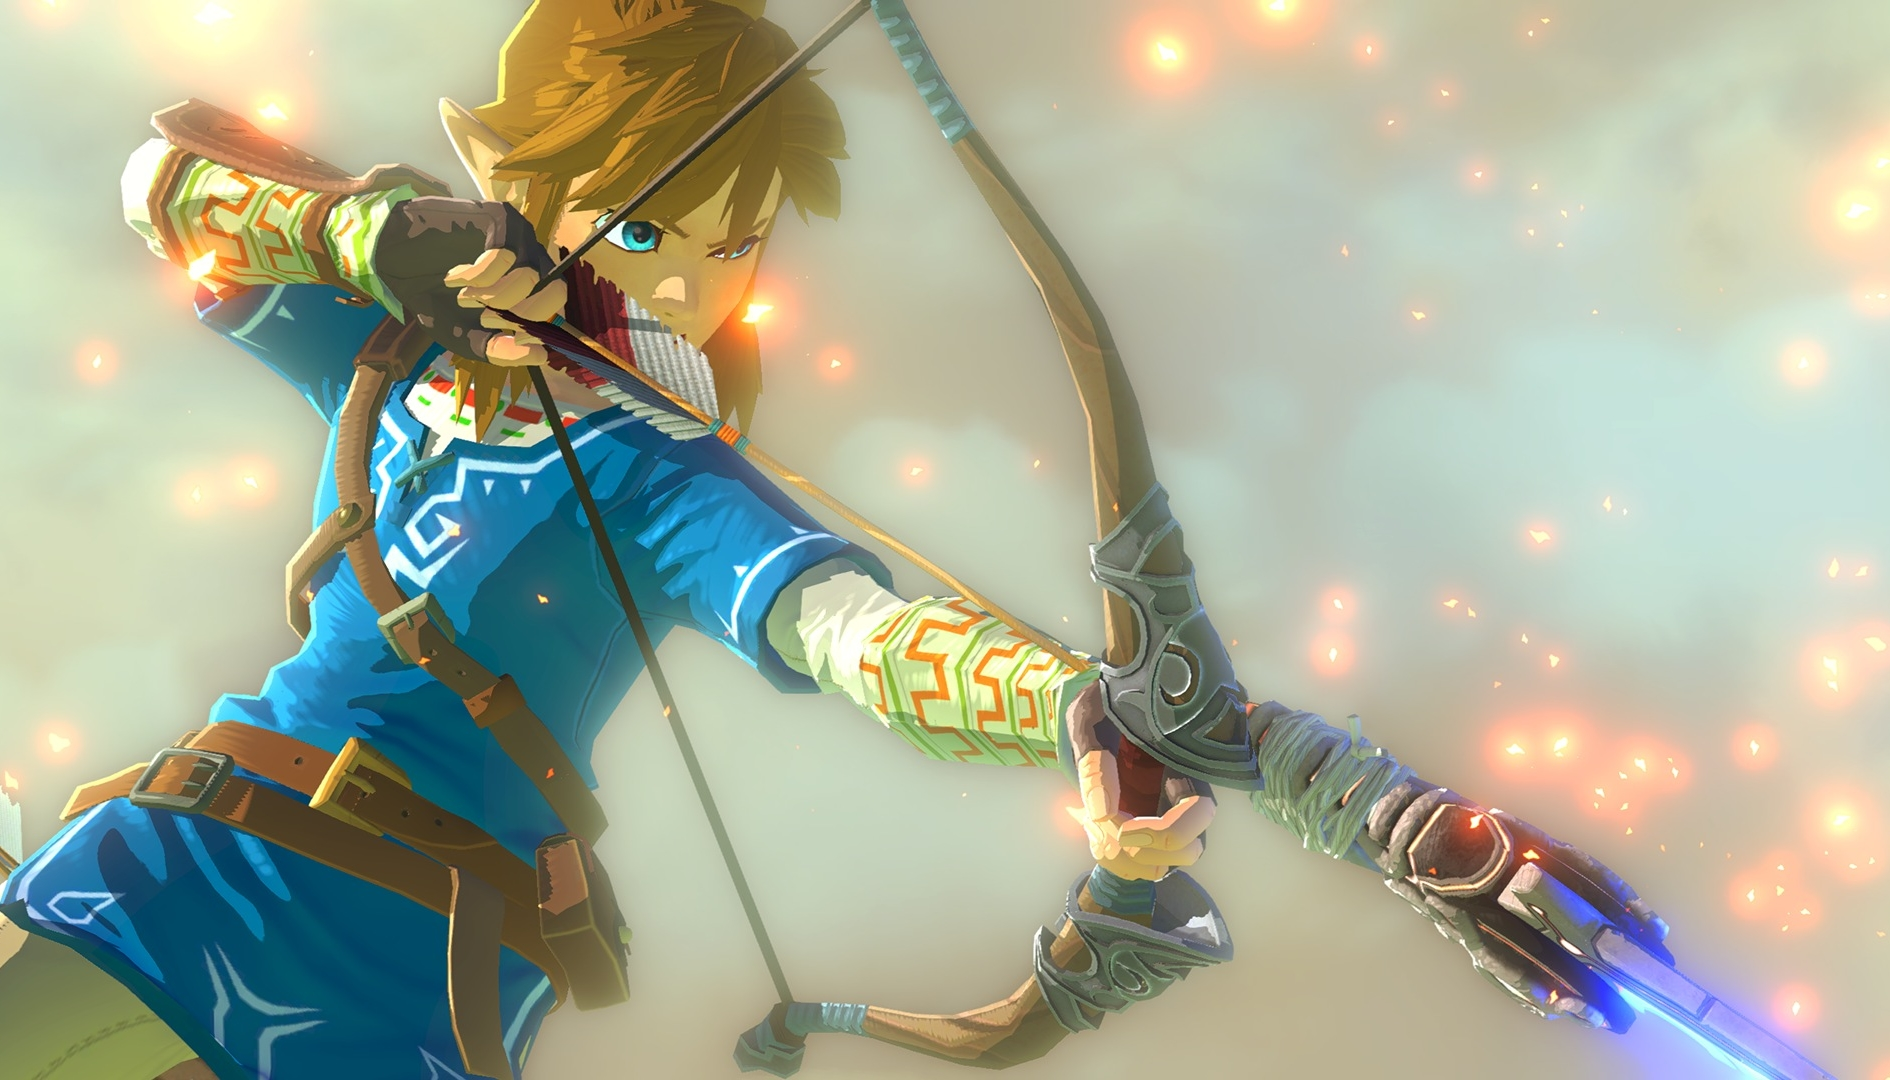 Nintendo Switch Pro: Breath of the Wild 2 come titolo di lancio?